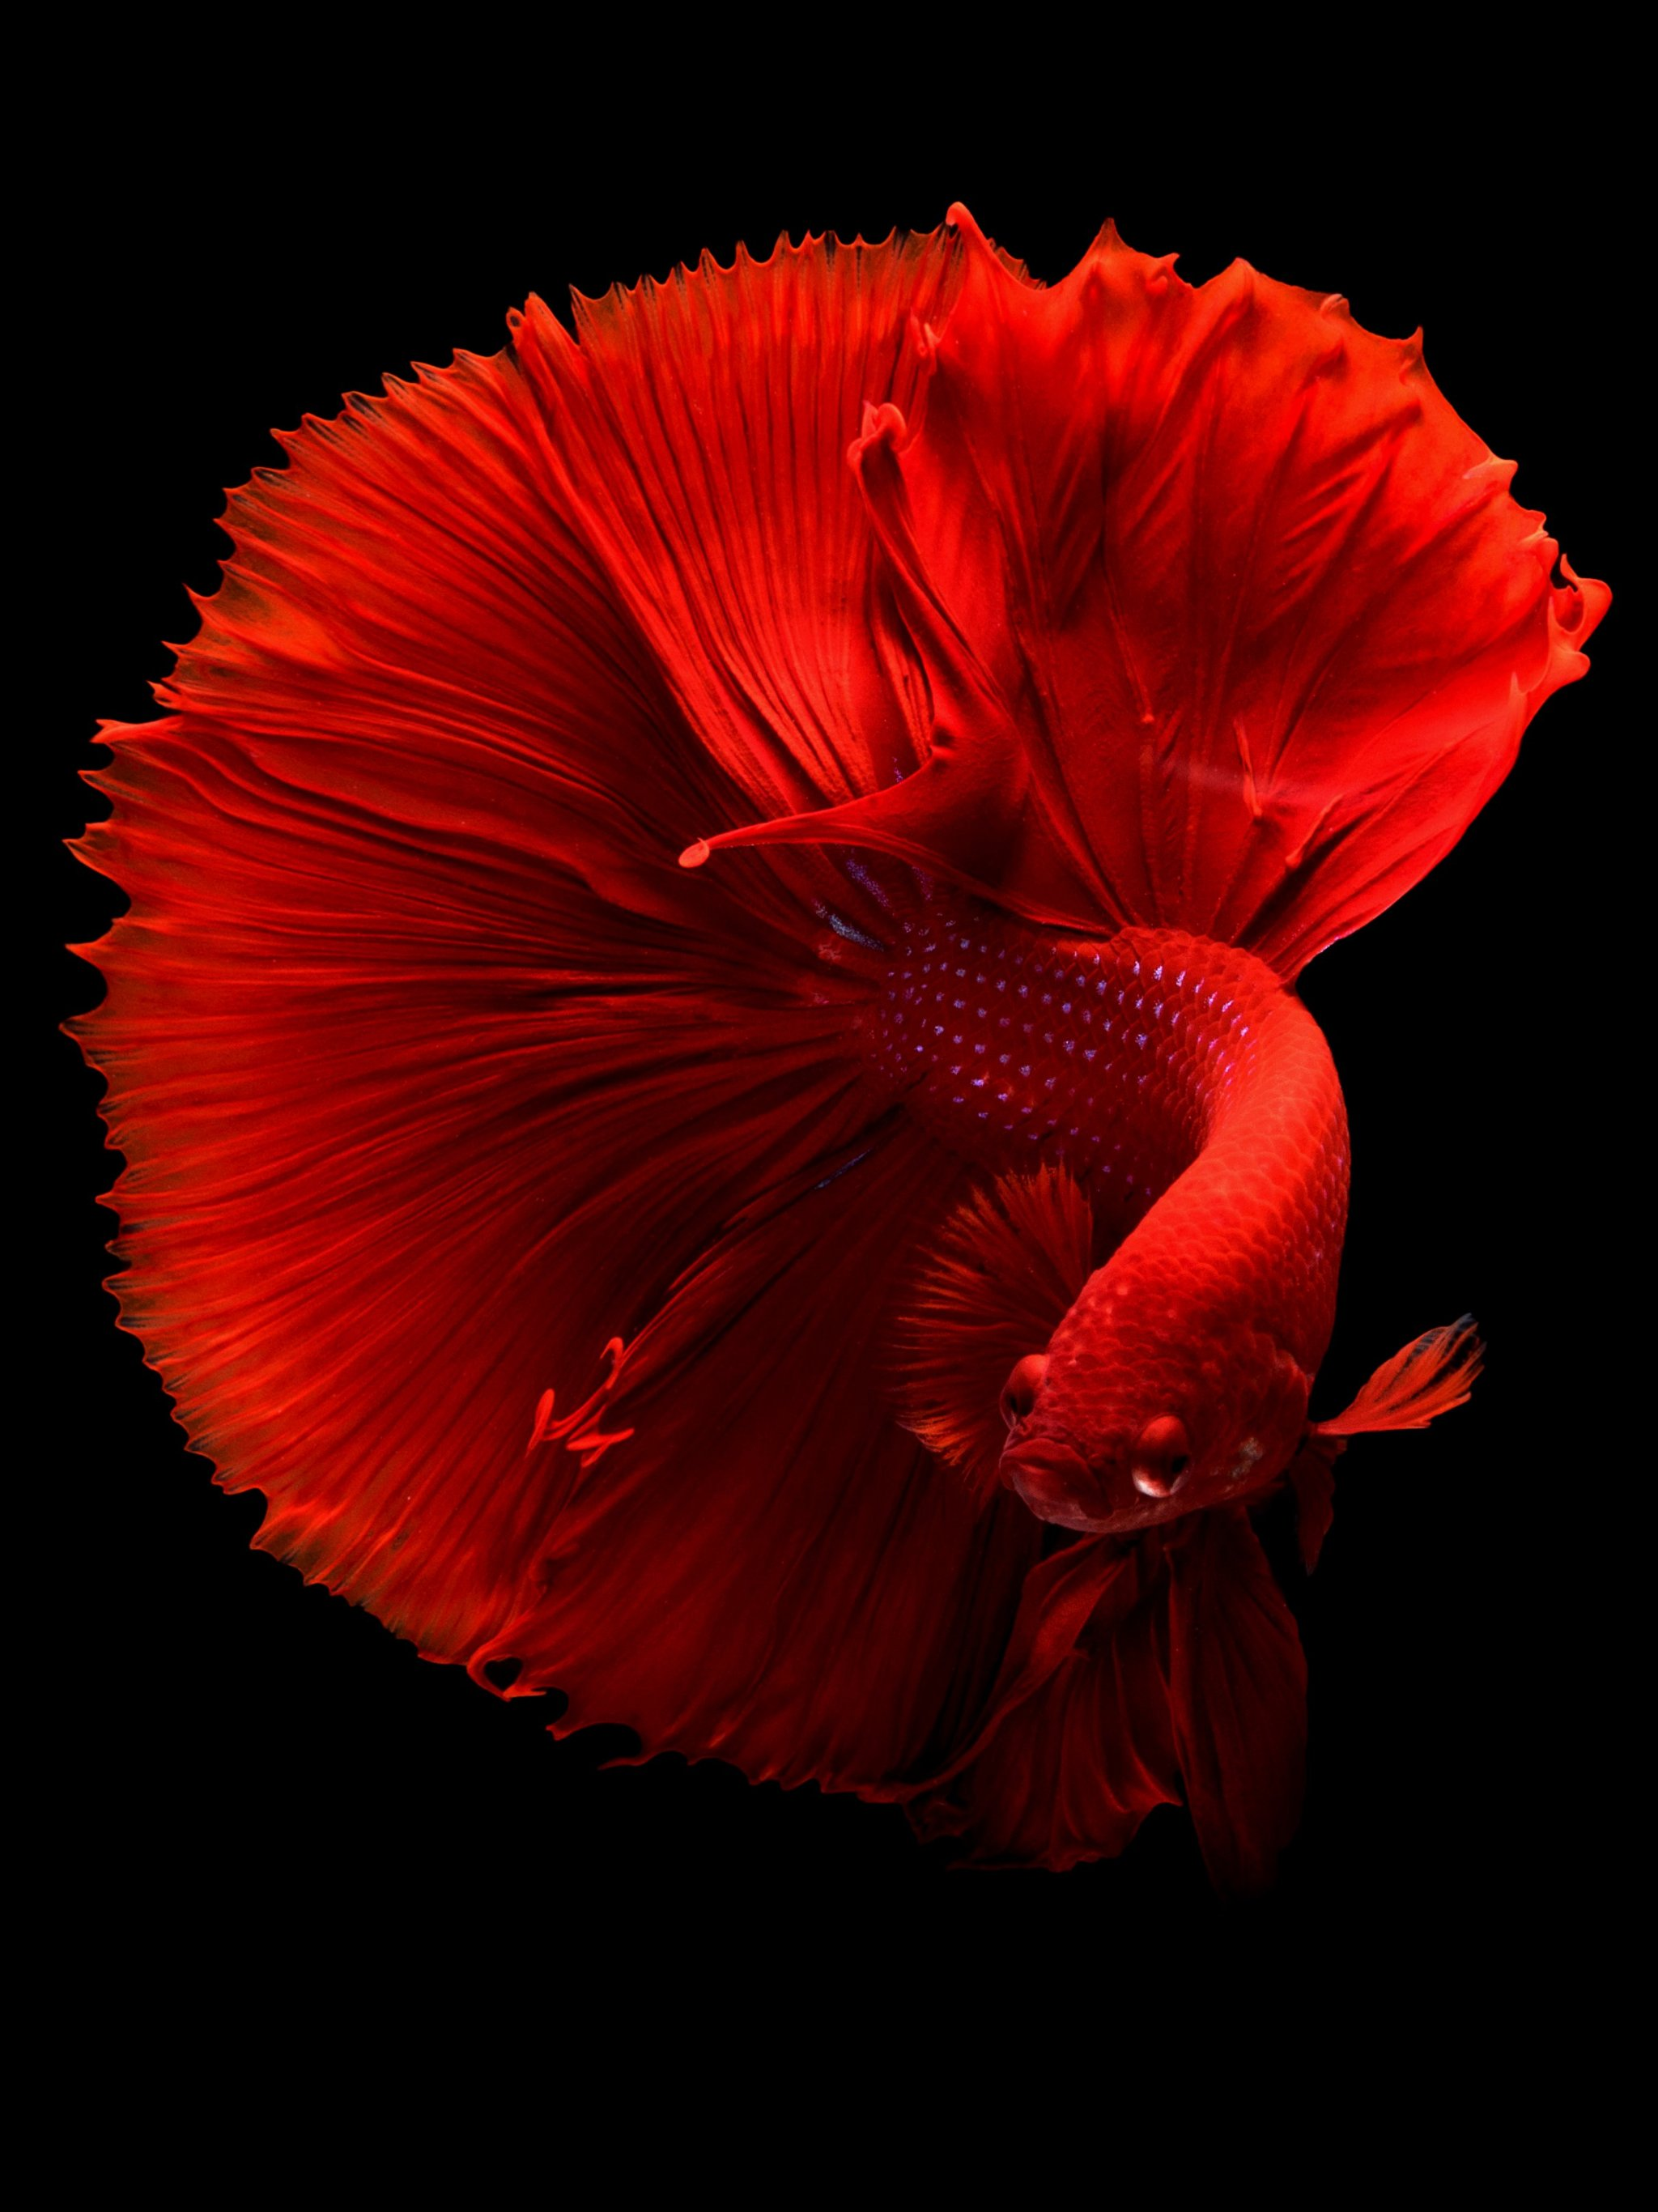 Siamese Fighting Fish Wallpaper - iPhone, Android ...